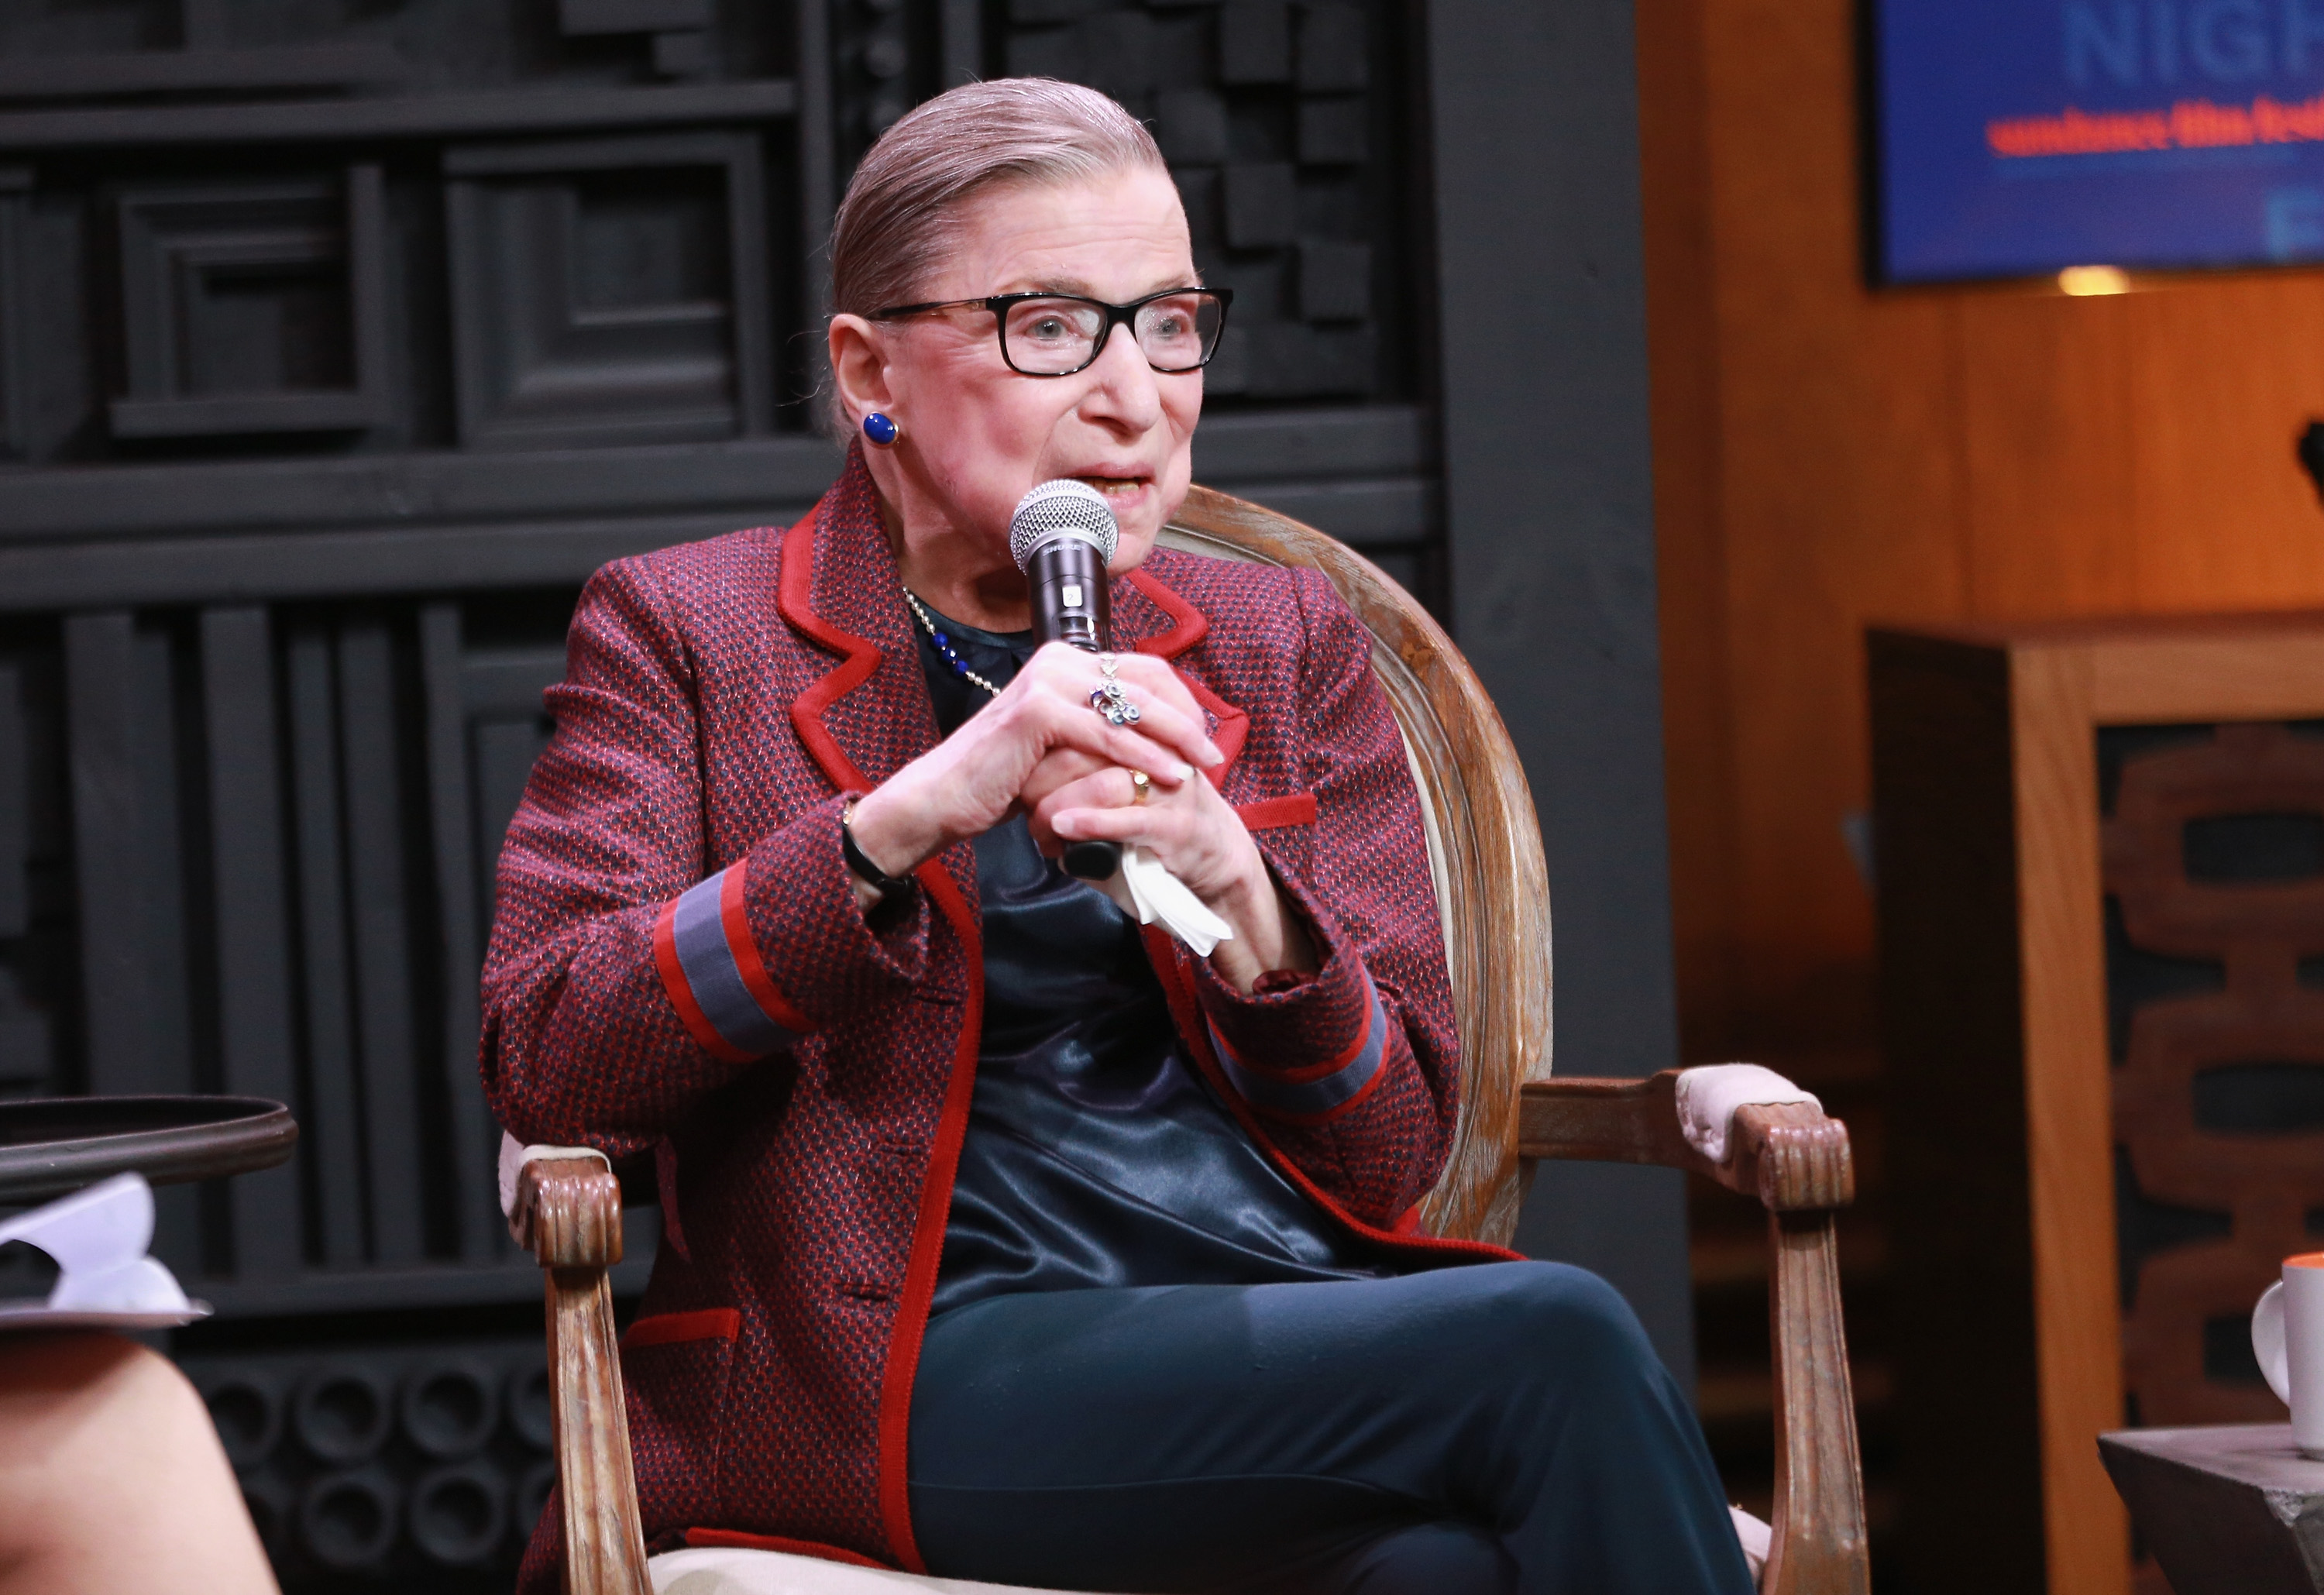 Associate Justice of the Supreme Court of the United States Ruth Bader Ginsburg speaks during the Cinema Cafe with Justice Ruth Bader Ginsburg and Nina Totenberg during the 2018 Sundance Film Festival at Filmmaker Lodge on January 21, 2018 in Utah.